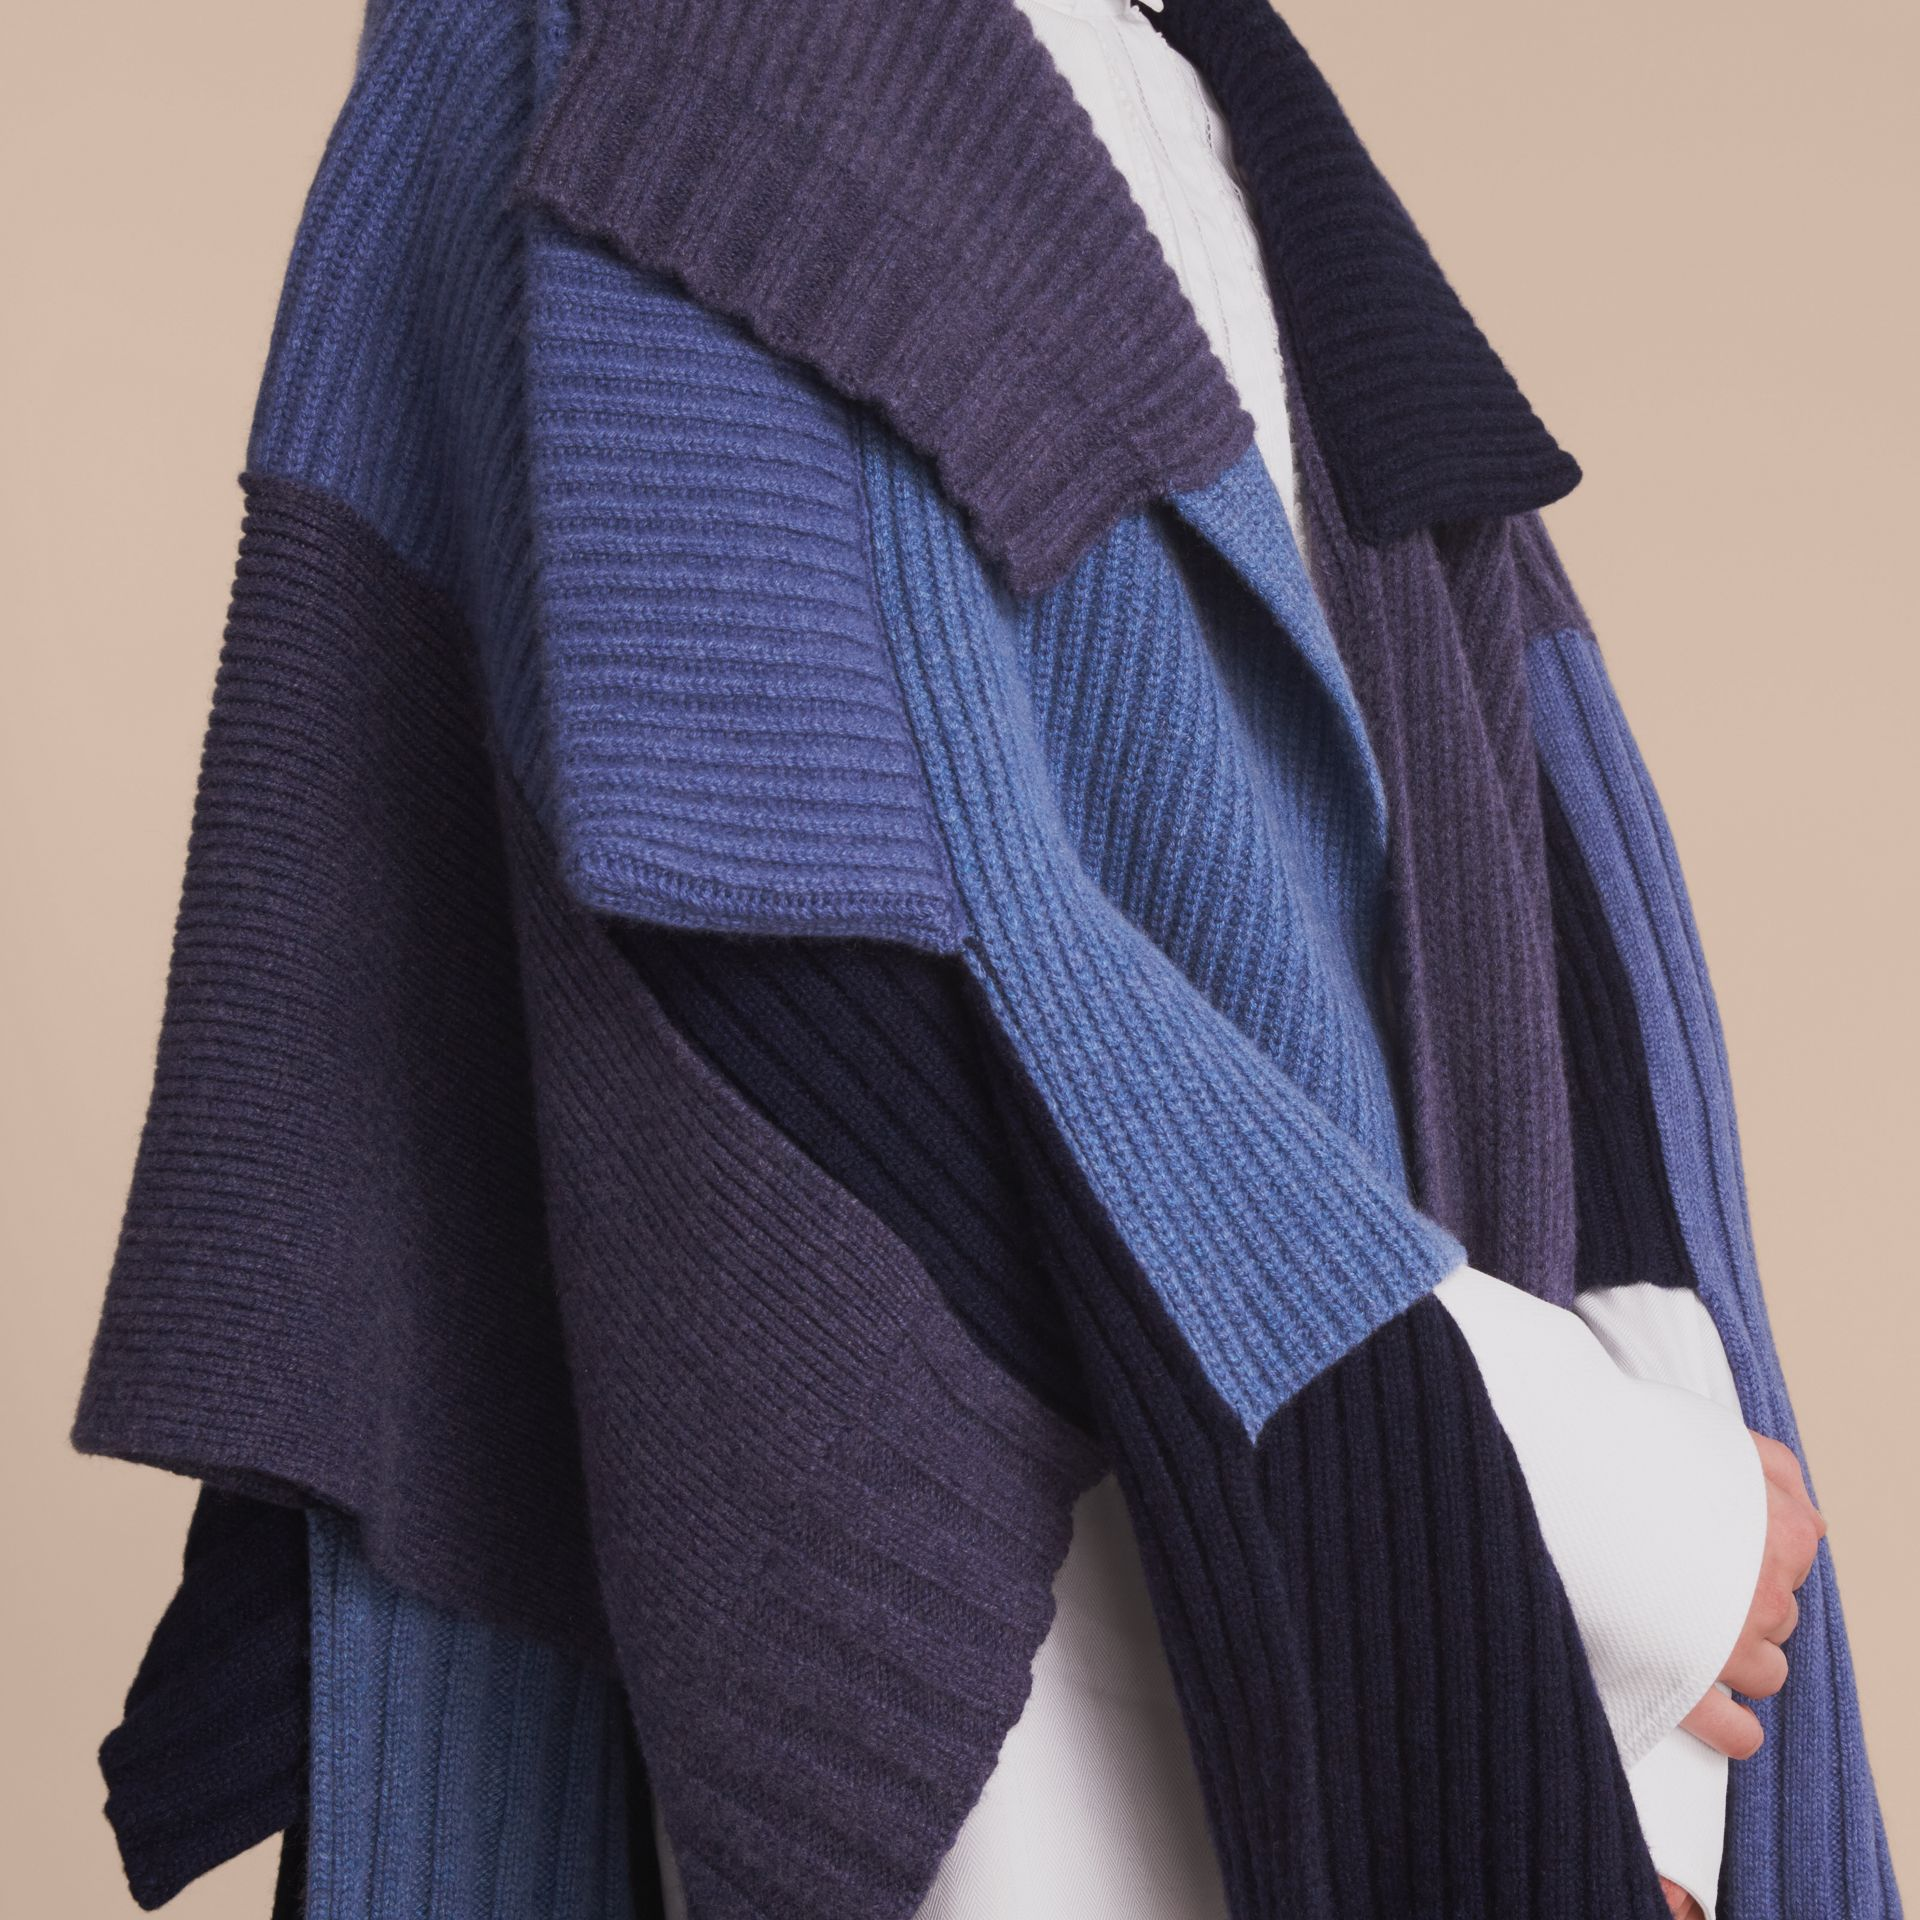 Wool Cashmere Patchwork Poncho in Carbon Blue - Women | Burberry - gallery image 5